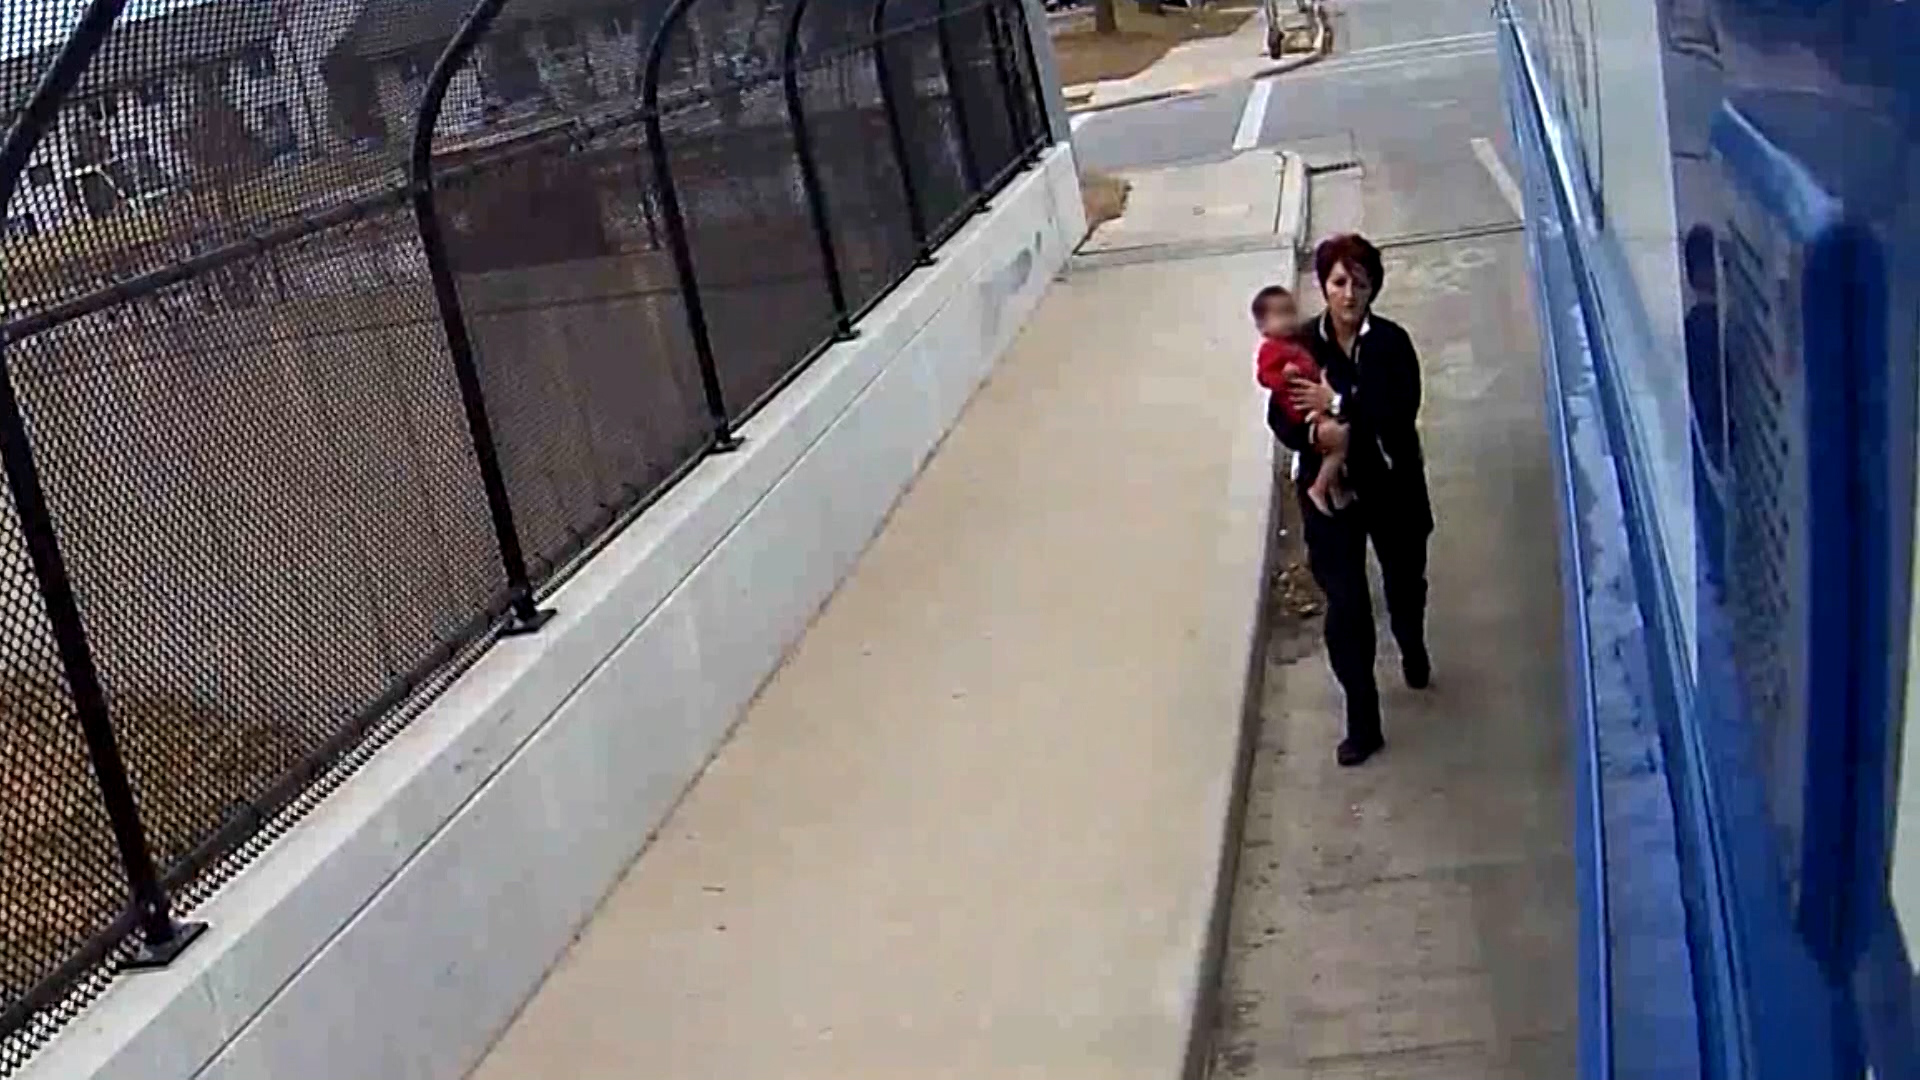 USA  bus driver rescues child found wandering barefoot